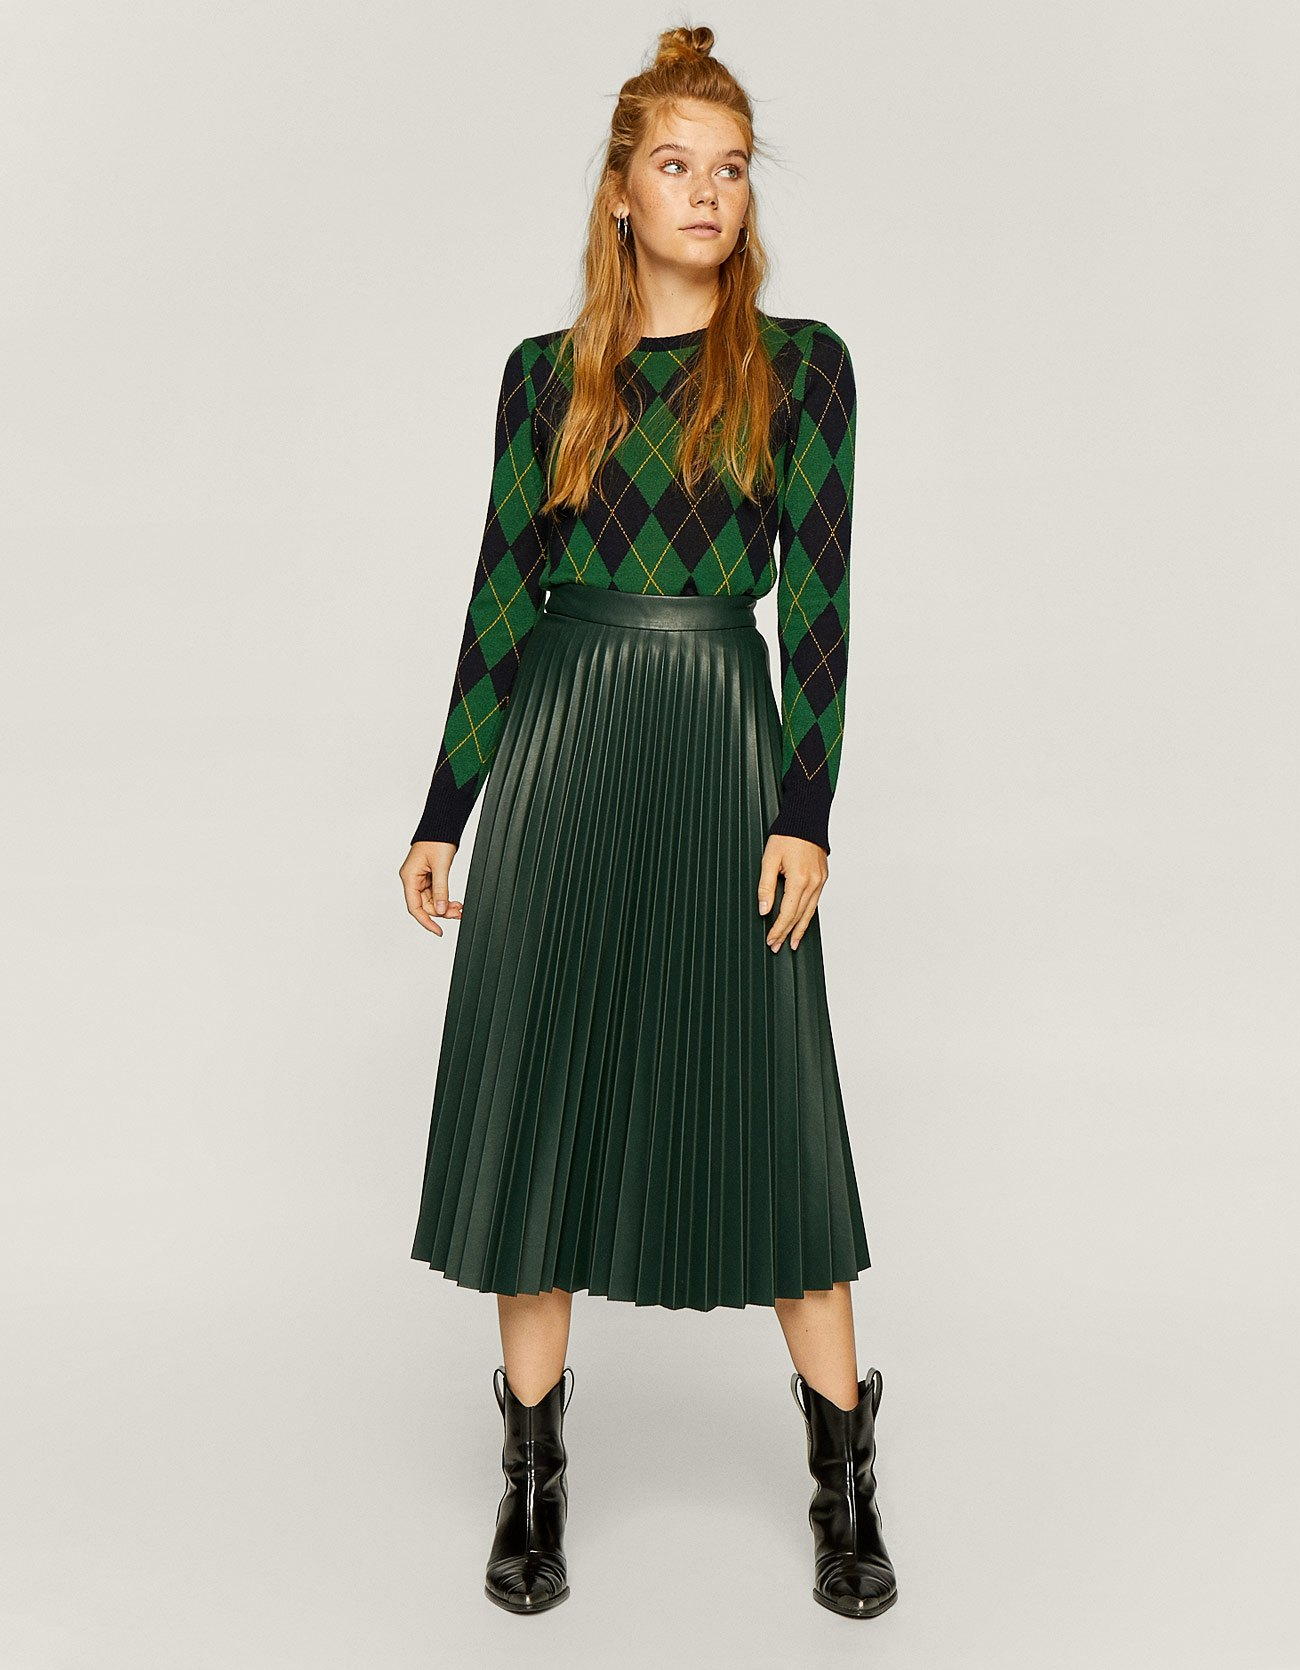 e727a76a01 Stradivarius Faux Leather Pleated Skirt In Bottle Green at £29.99 ...